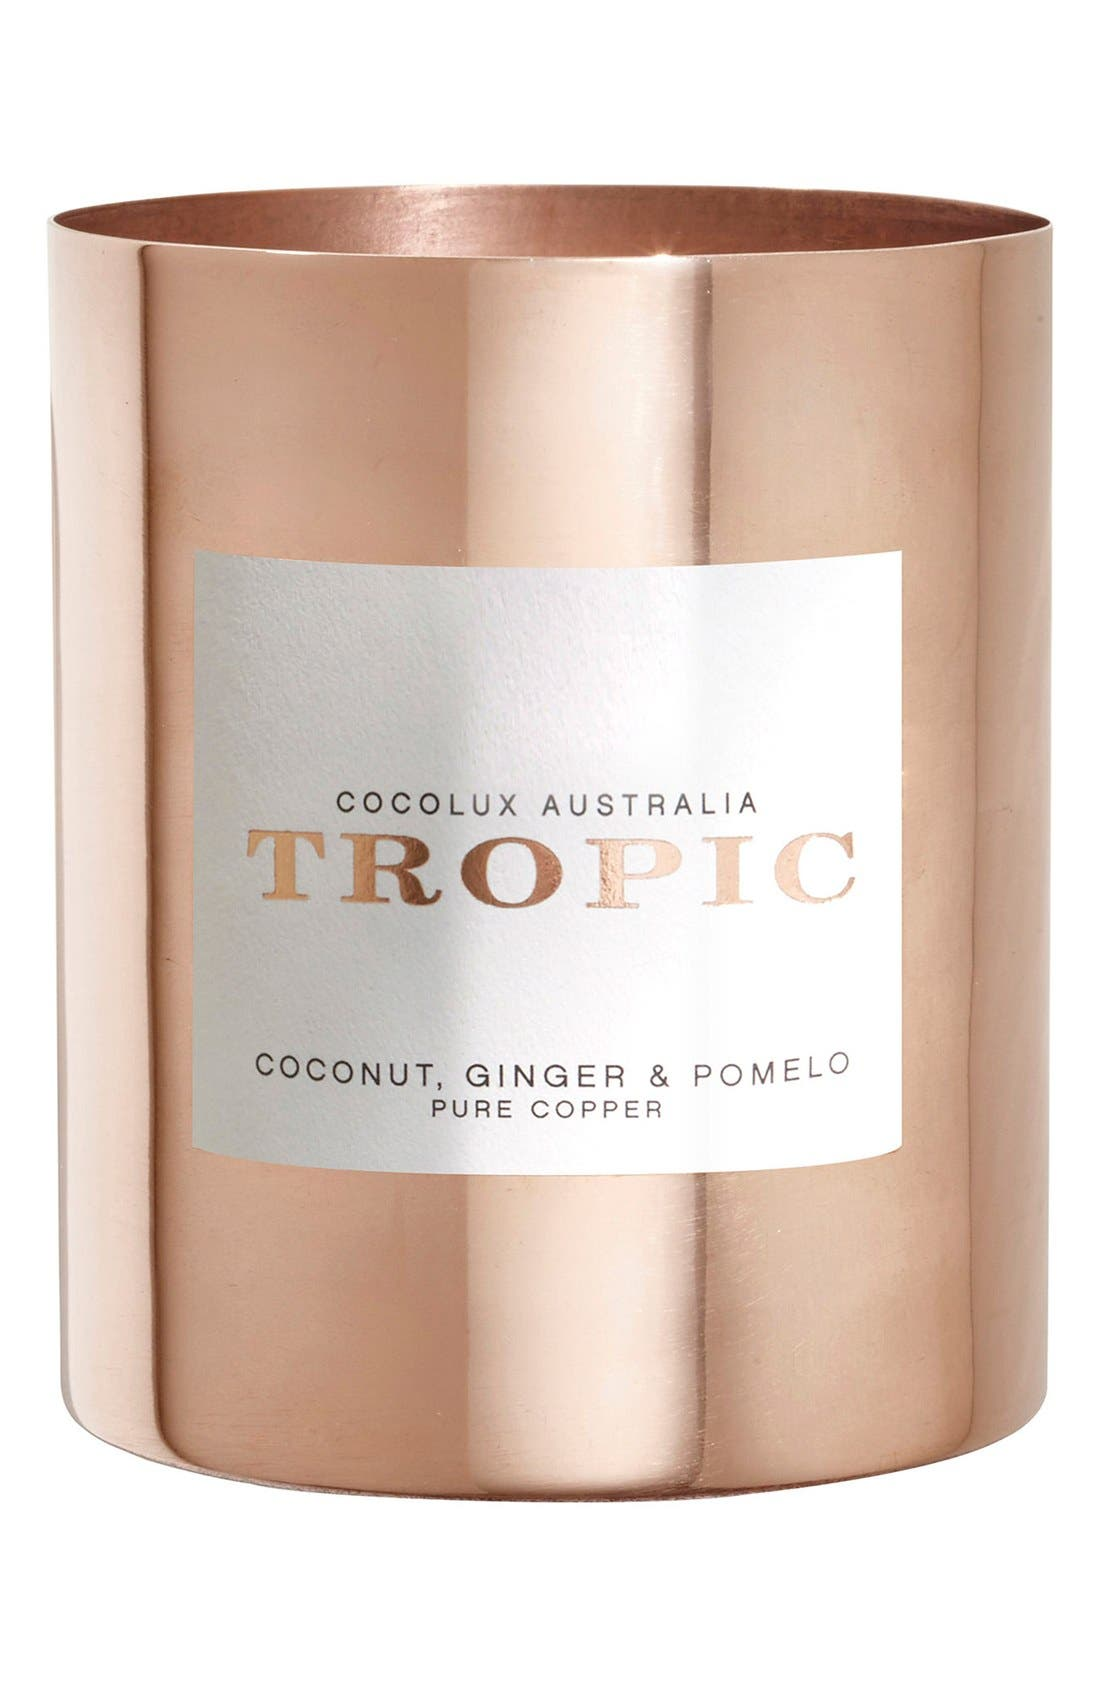 Cocolux Australia Coconut, Ginger & Pomelo Copper Candle